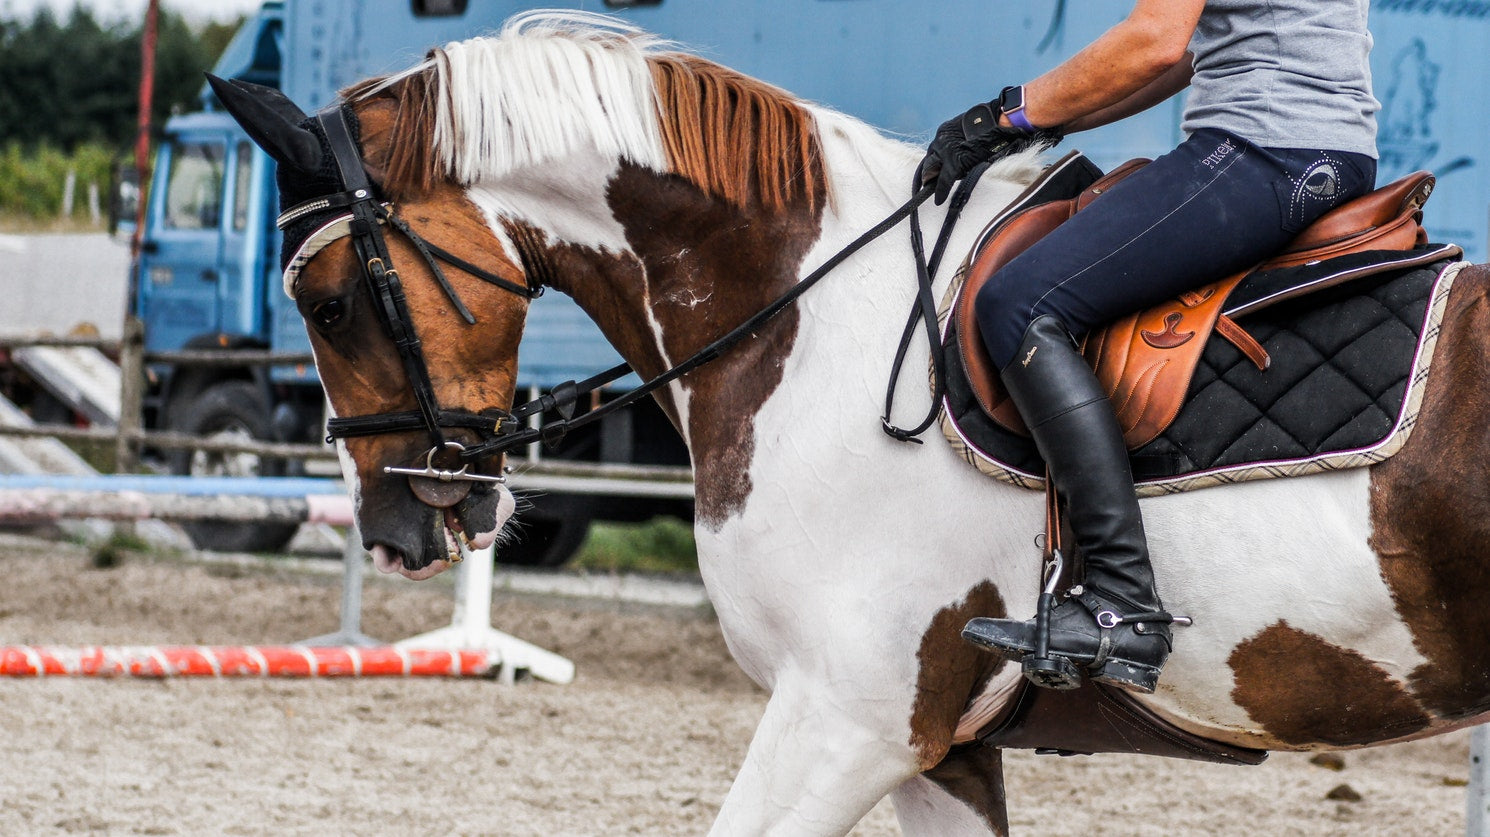 How to choose the right riding boots